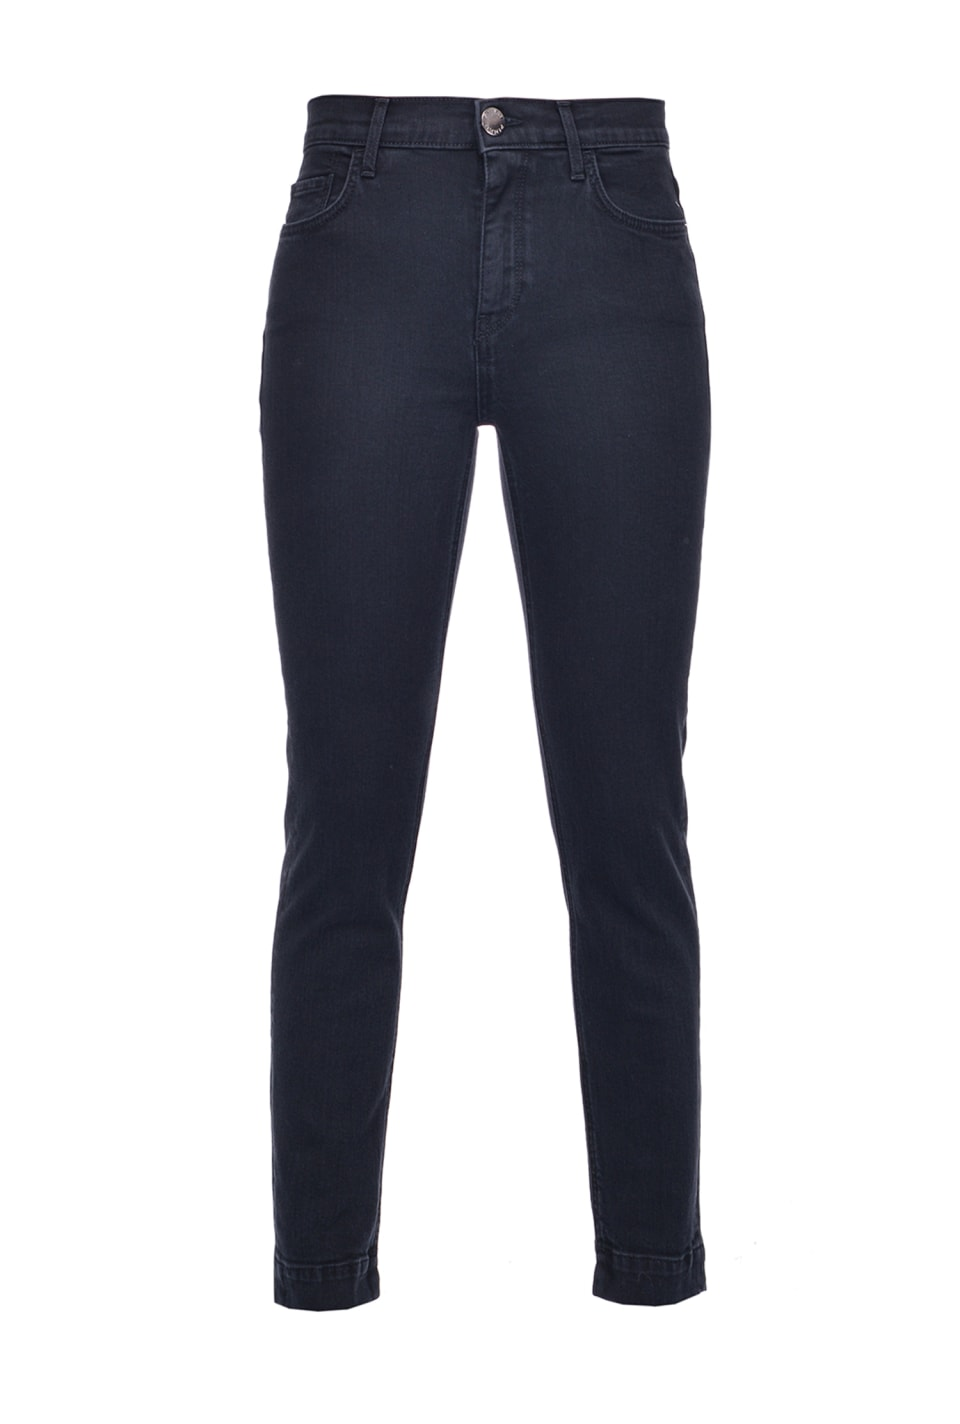 Skinny jeans in black stretch denim - Pinko